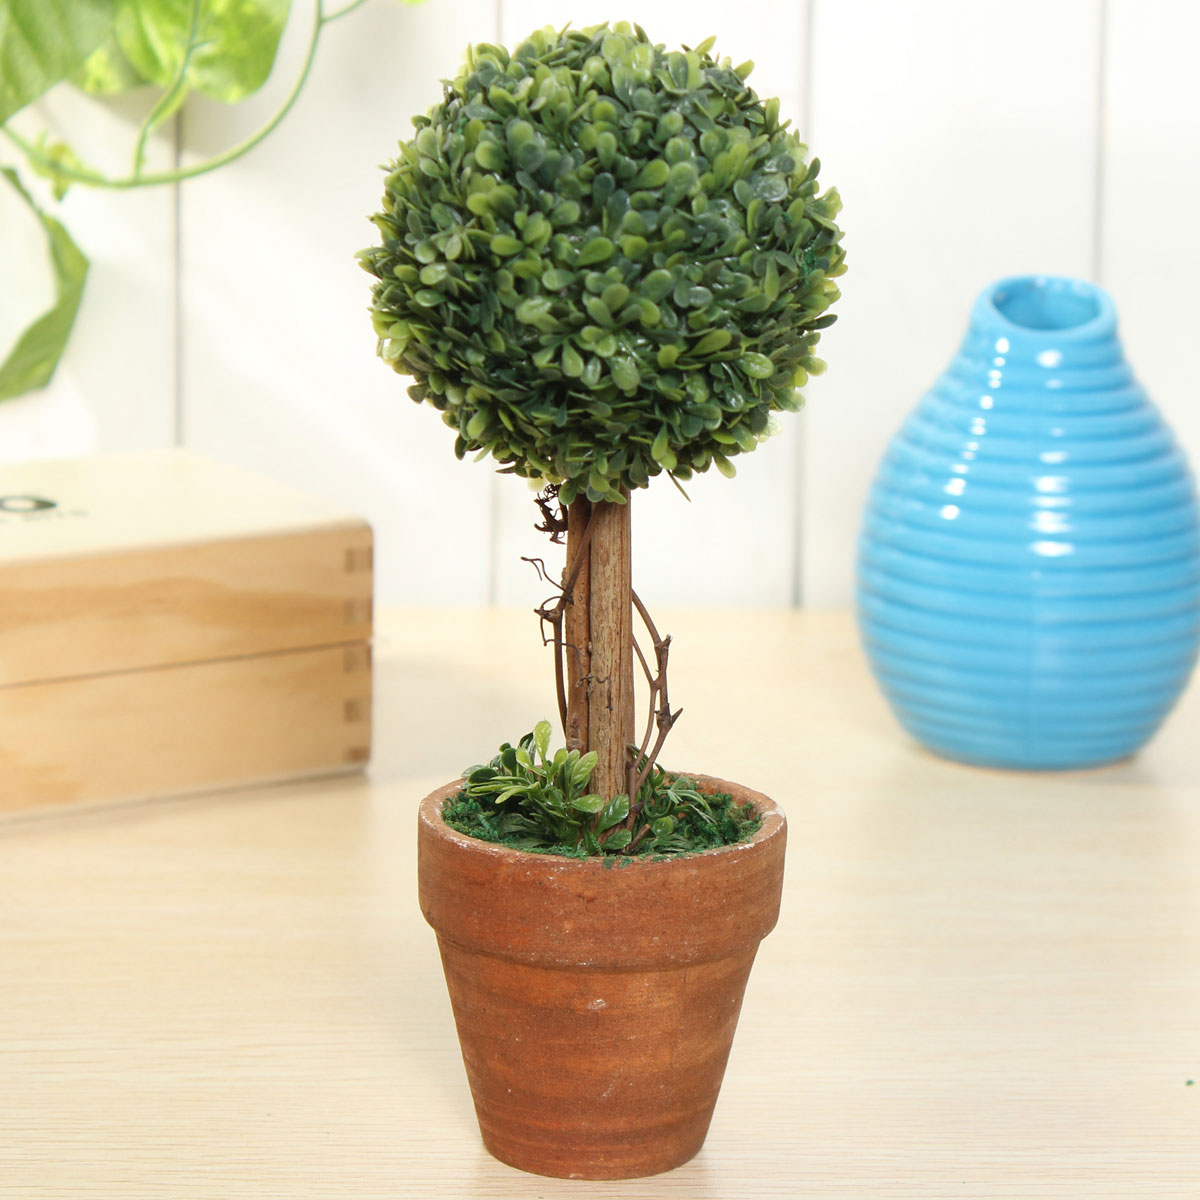 Artificial potted plant plastic garden grass ball topiary for In a garden 26 trees are planted